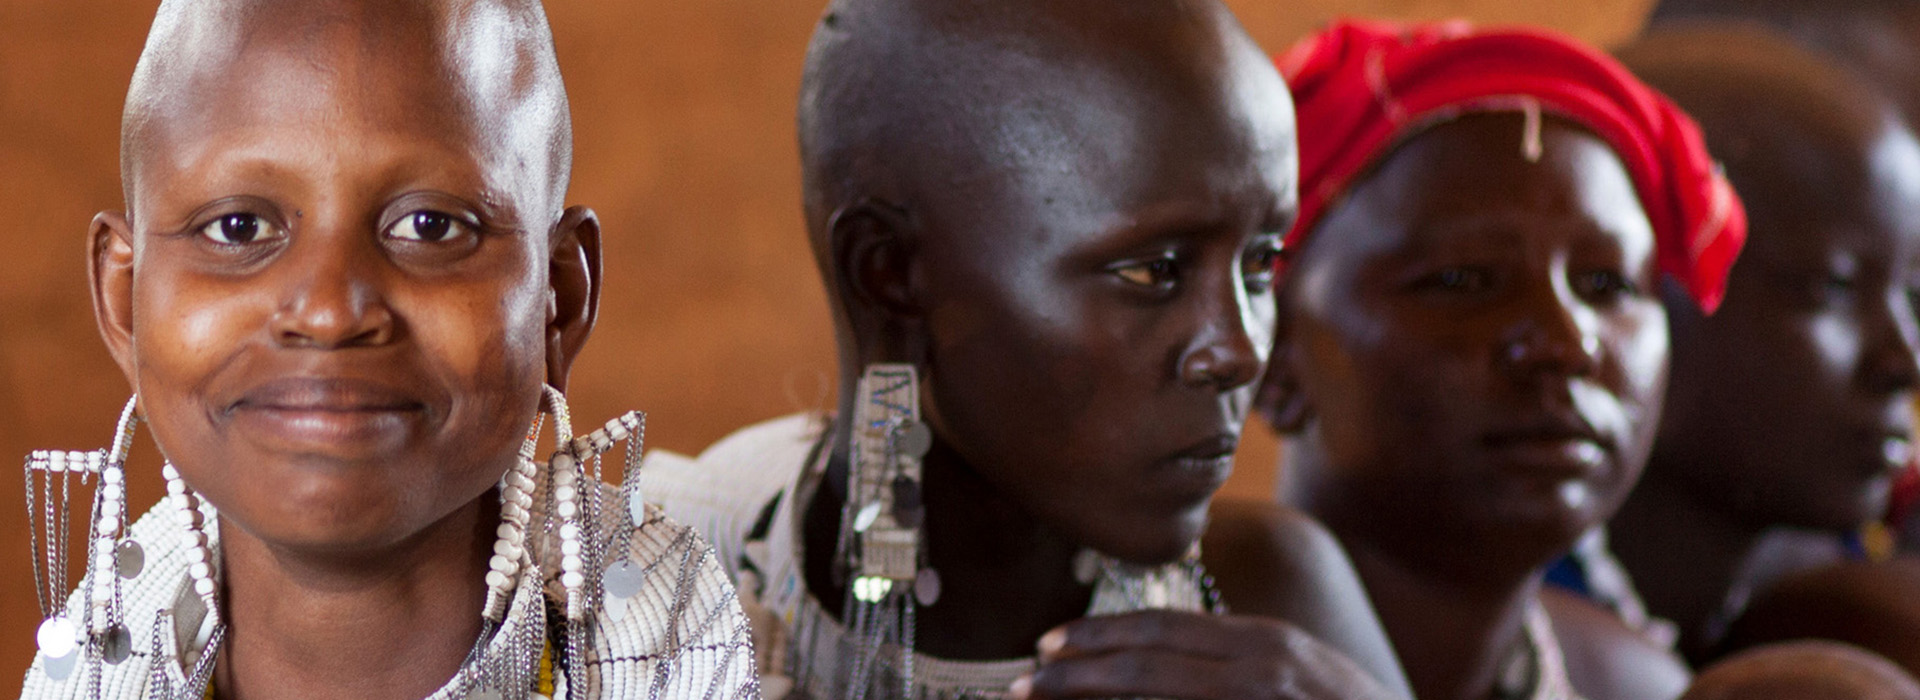 Three African woman proudly display traditional jewelry, especially earrings